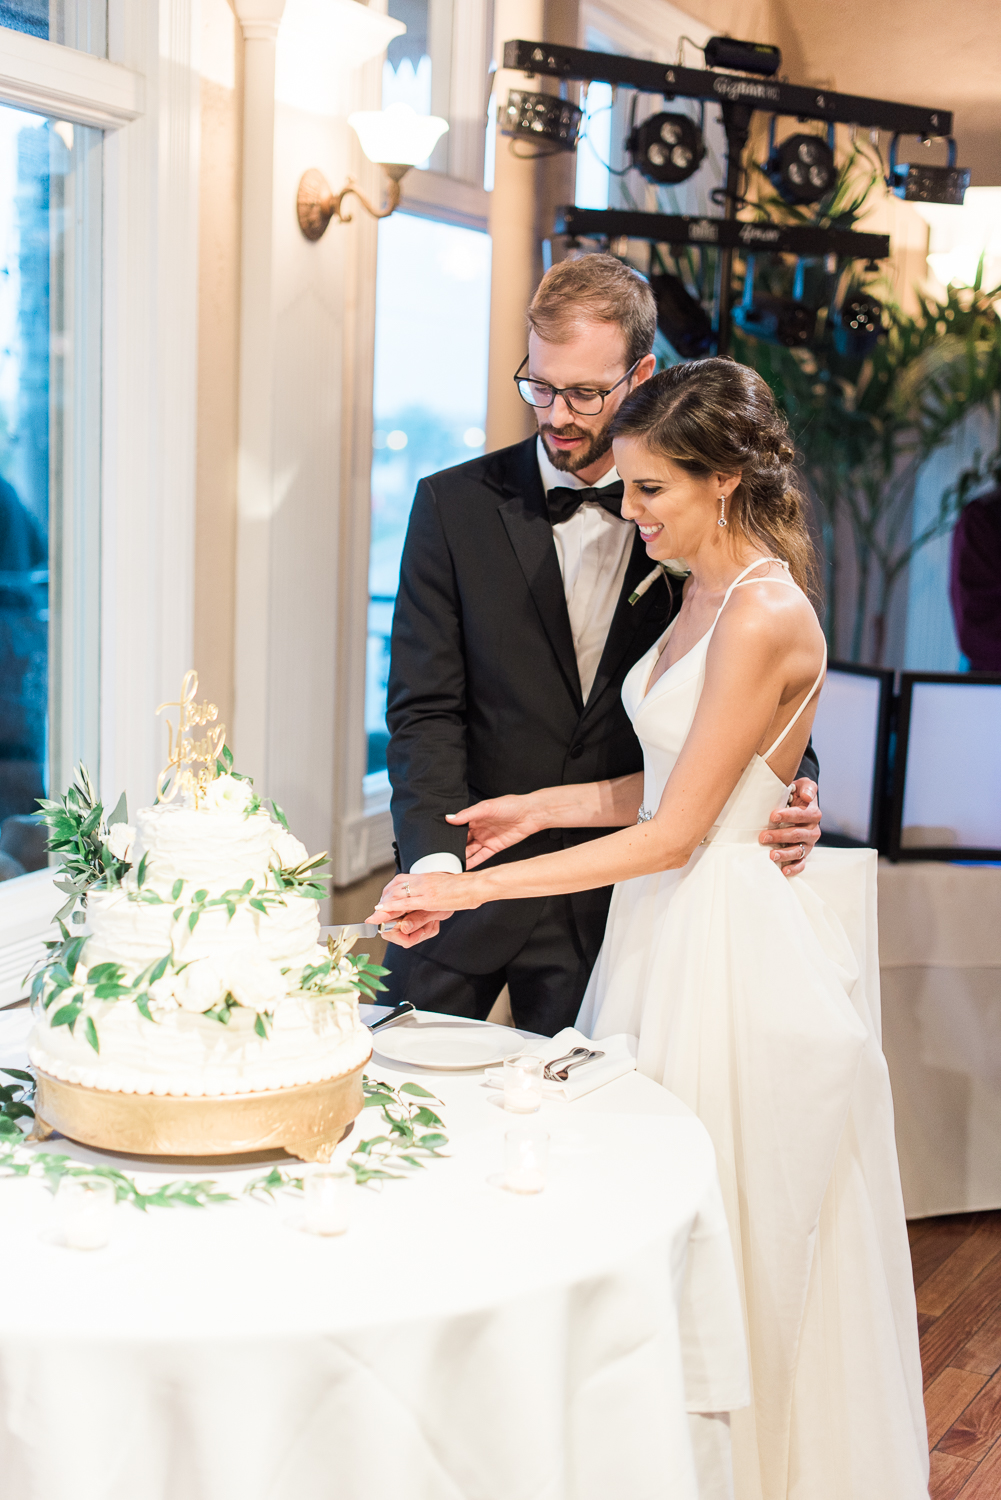 Cake cutting in the white room, st.augustine